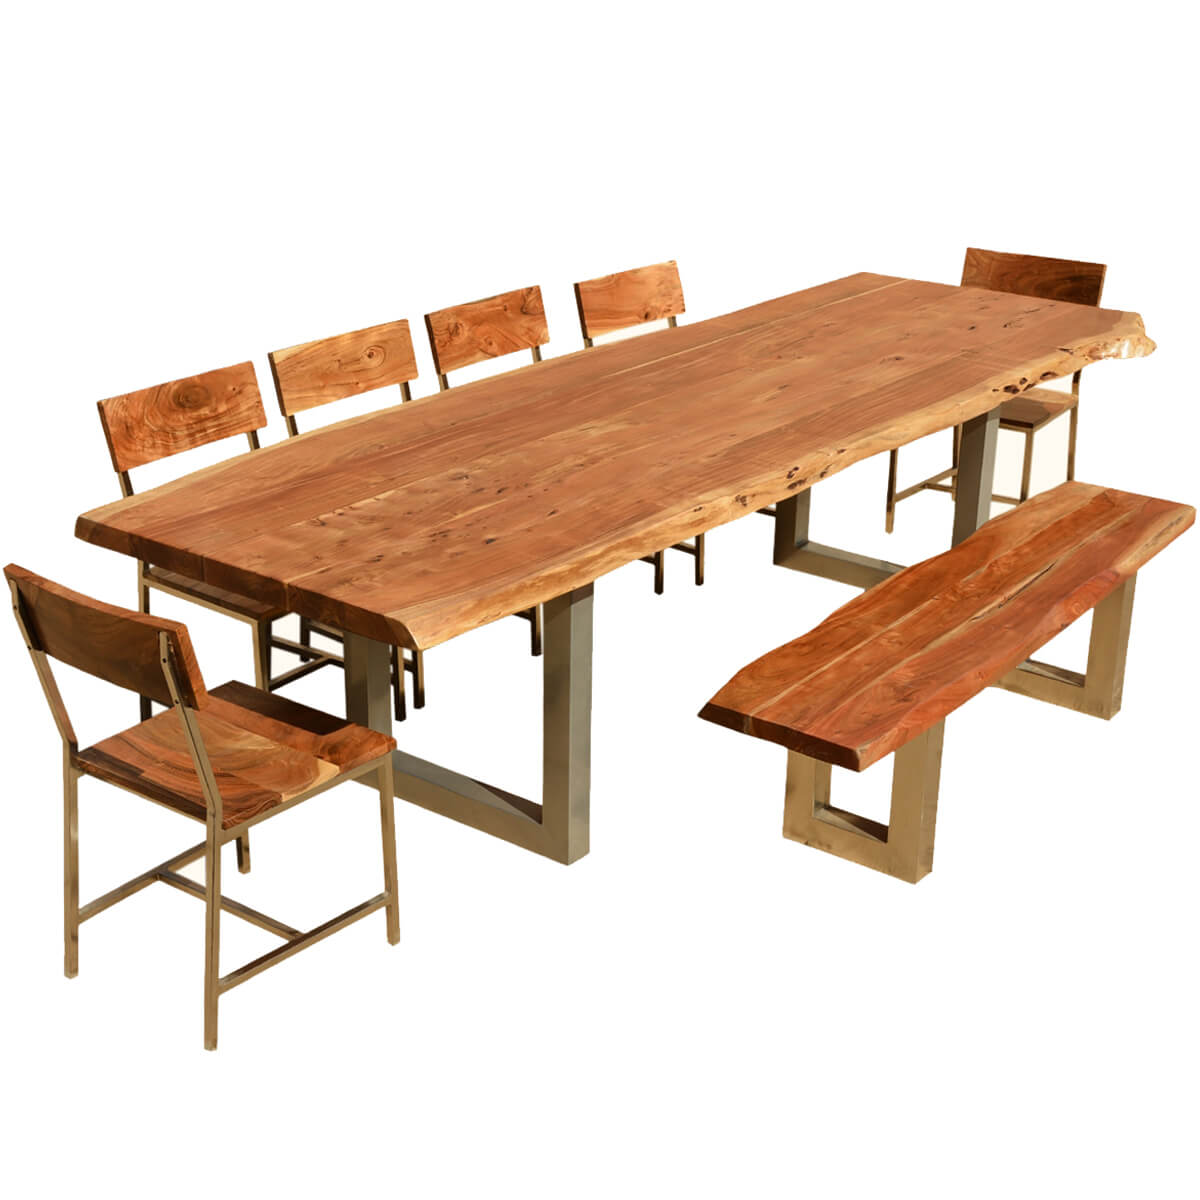 117 Live Edge Dining Table W 6 Chairs Bench Acacia Wood Iron